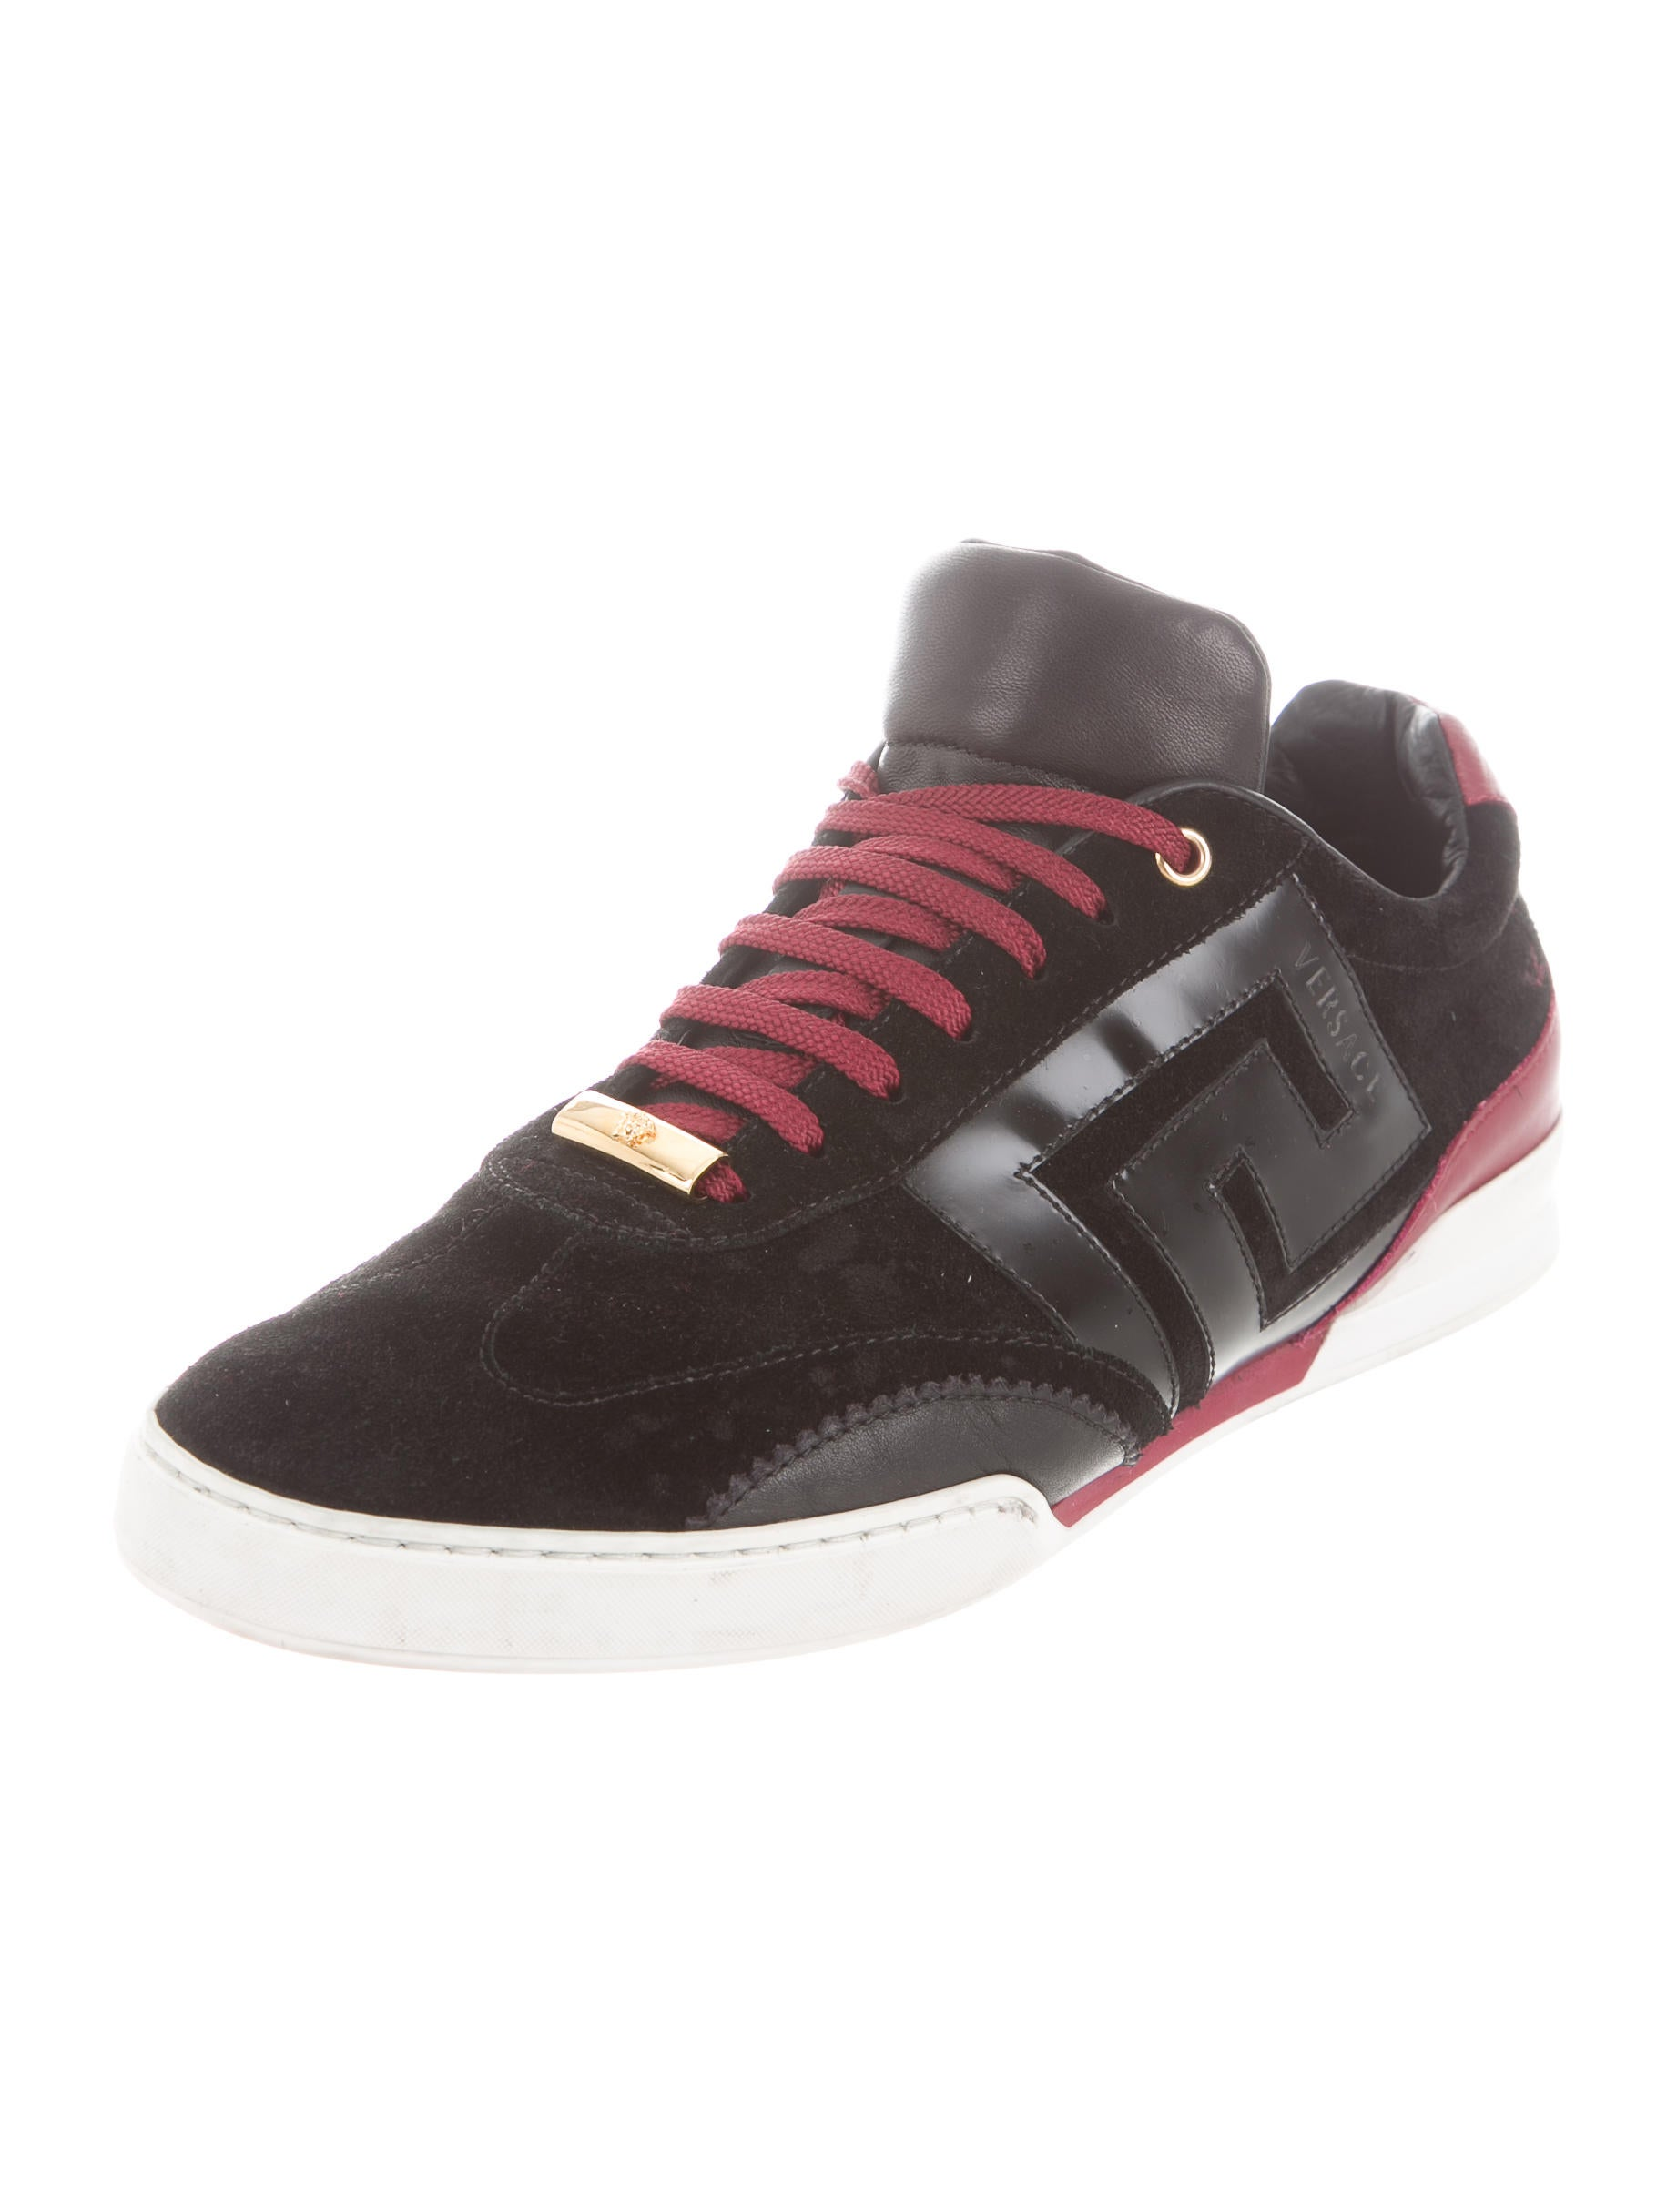 Versace Suede Leather Trimmed Sneakers Shoes VES30024  : VES300242enlarged from www.therealreal.com size 1842 x 2430 jpeg 162kB